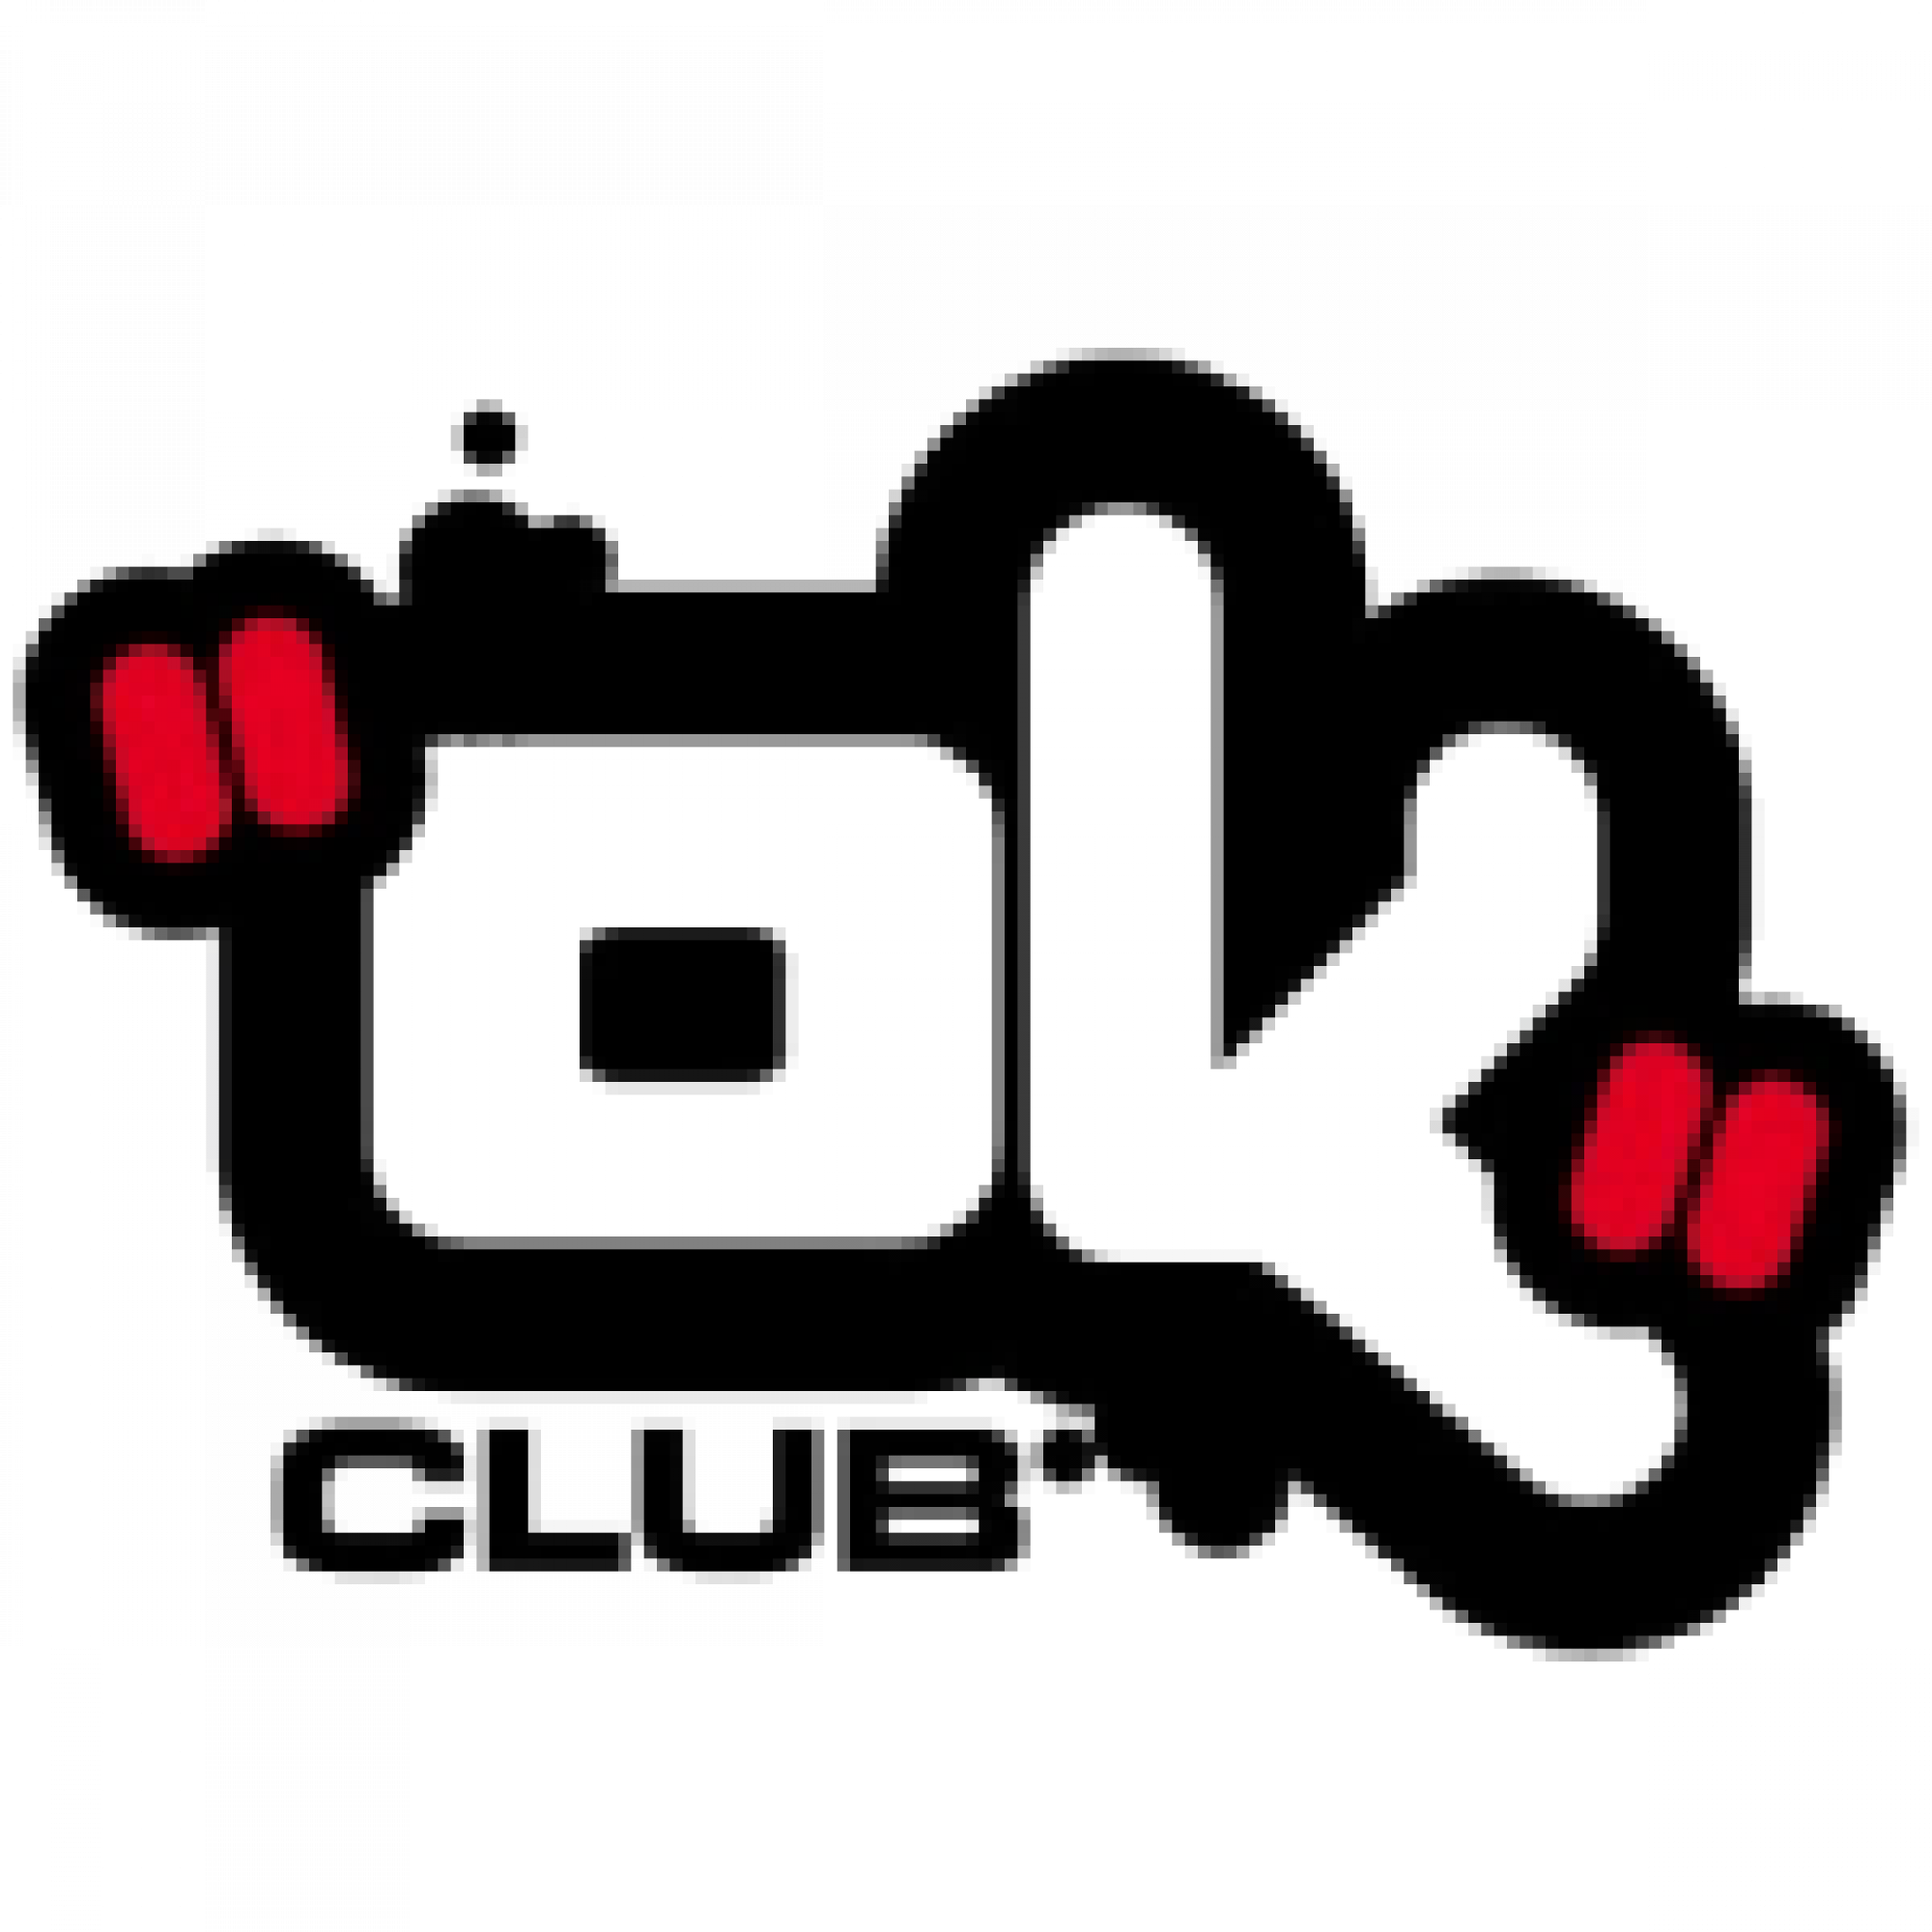 Welcome to Worth Unlimited | The OK Club